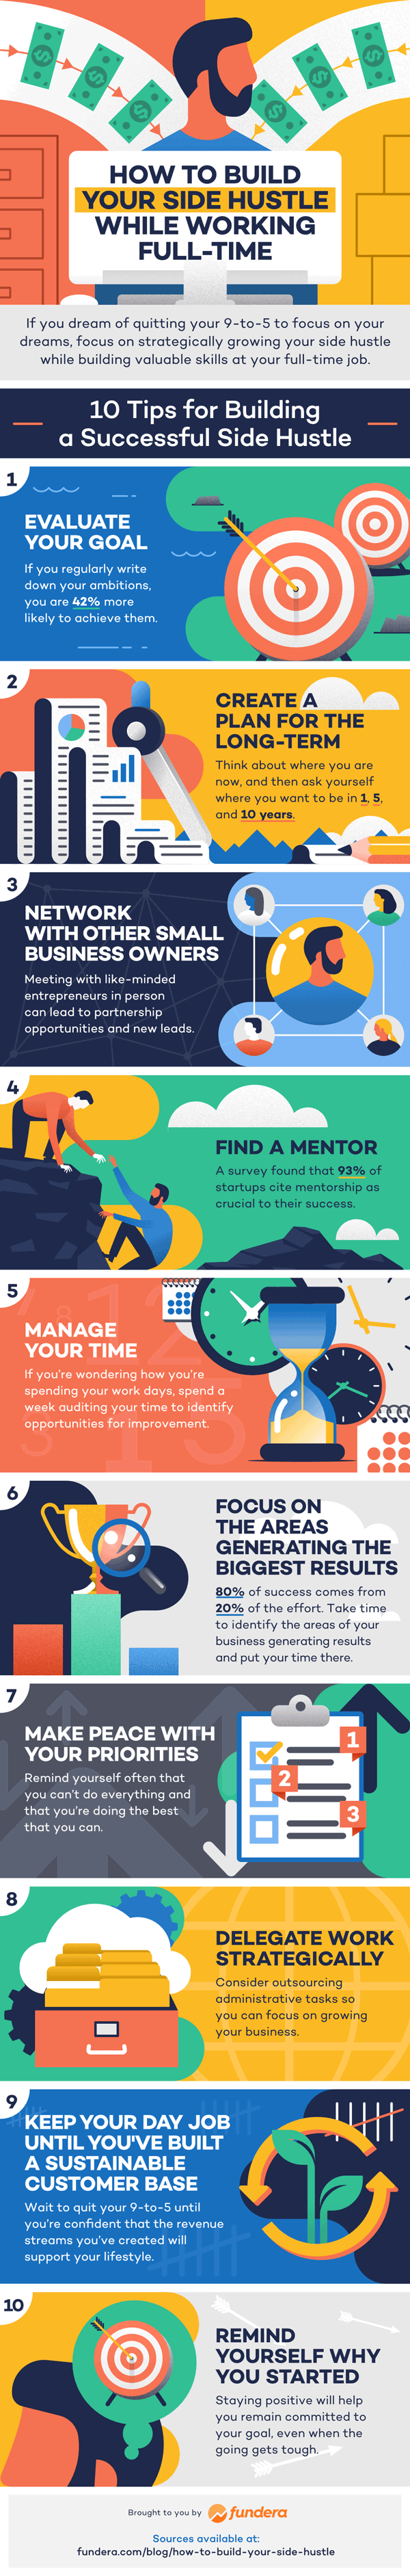 Build a side hustle while working full time! Here are 10 tips to build a successful business on a colorful infographic.